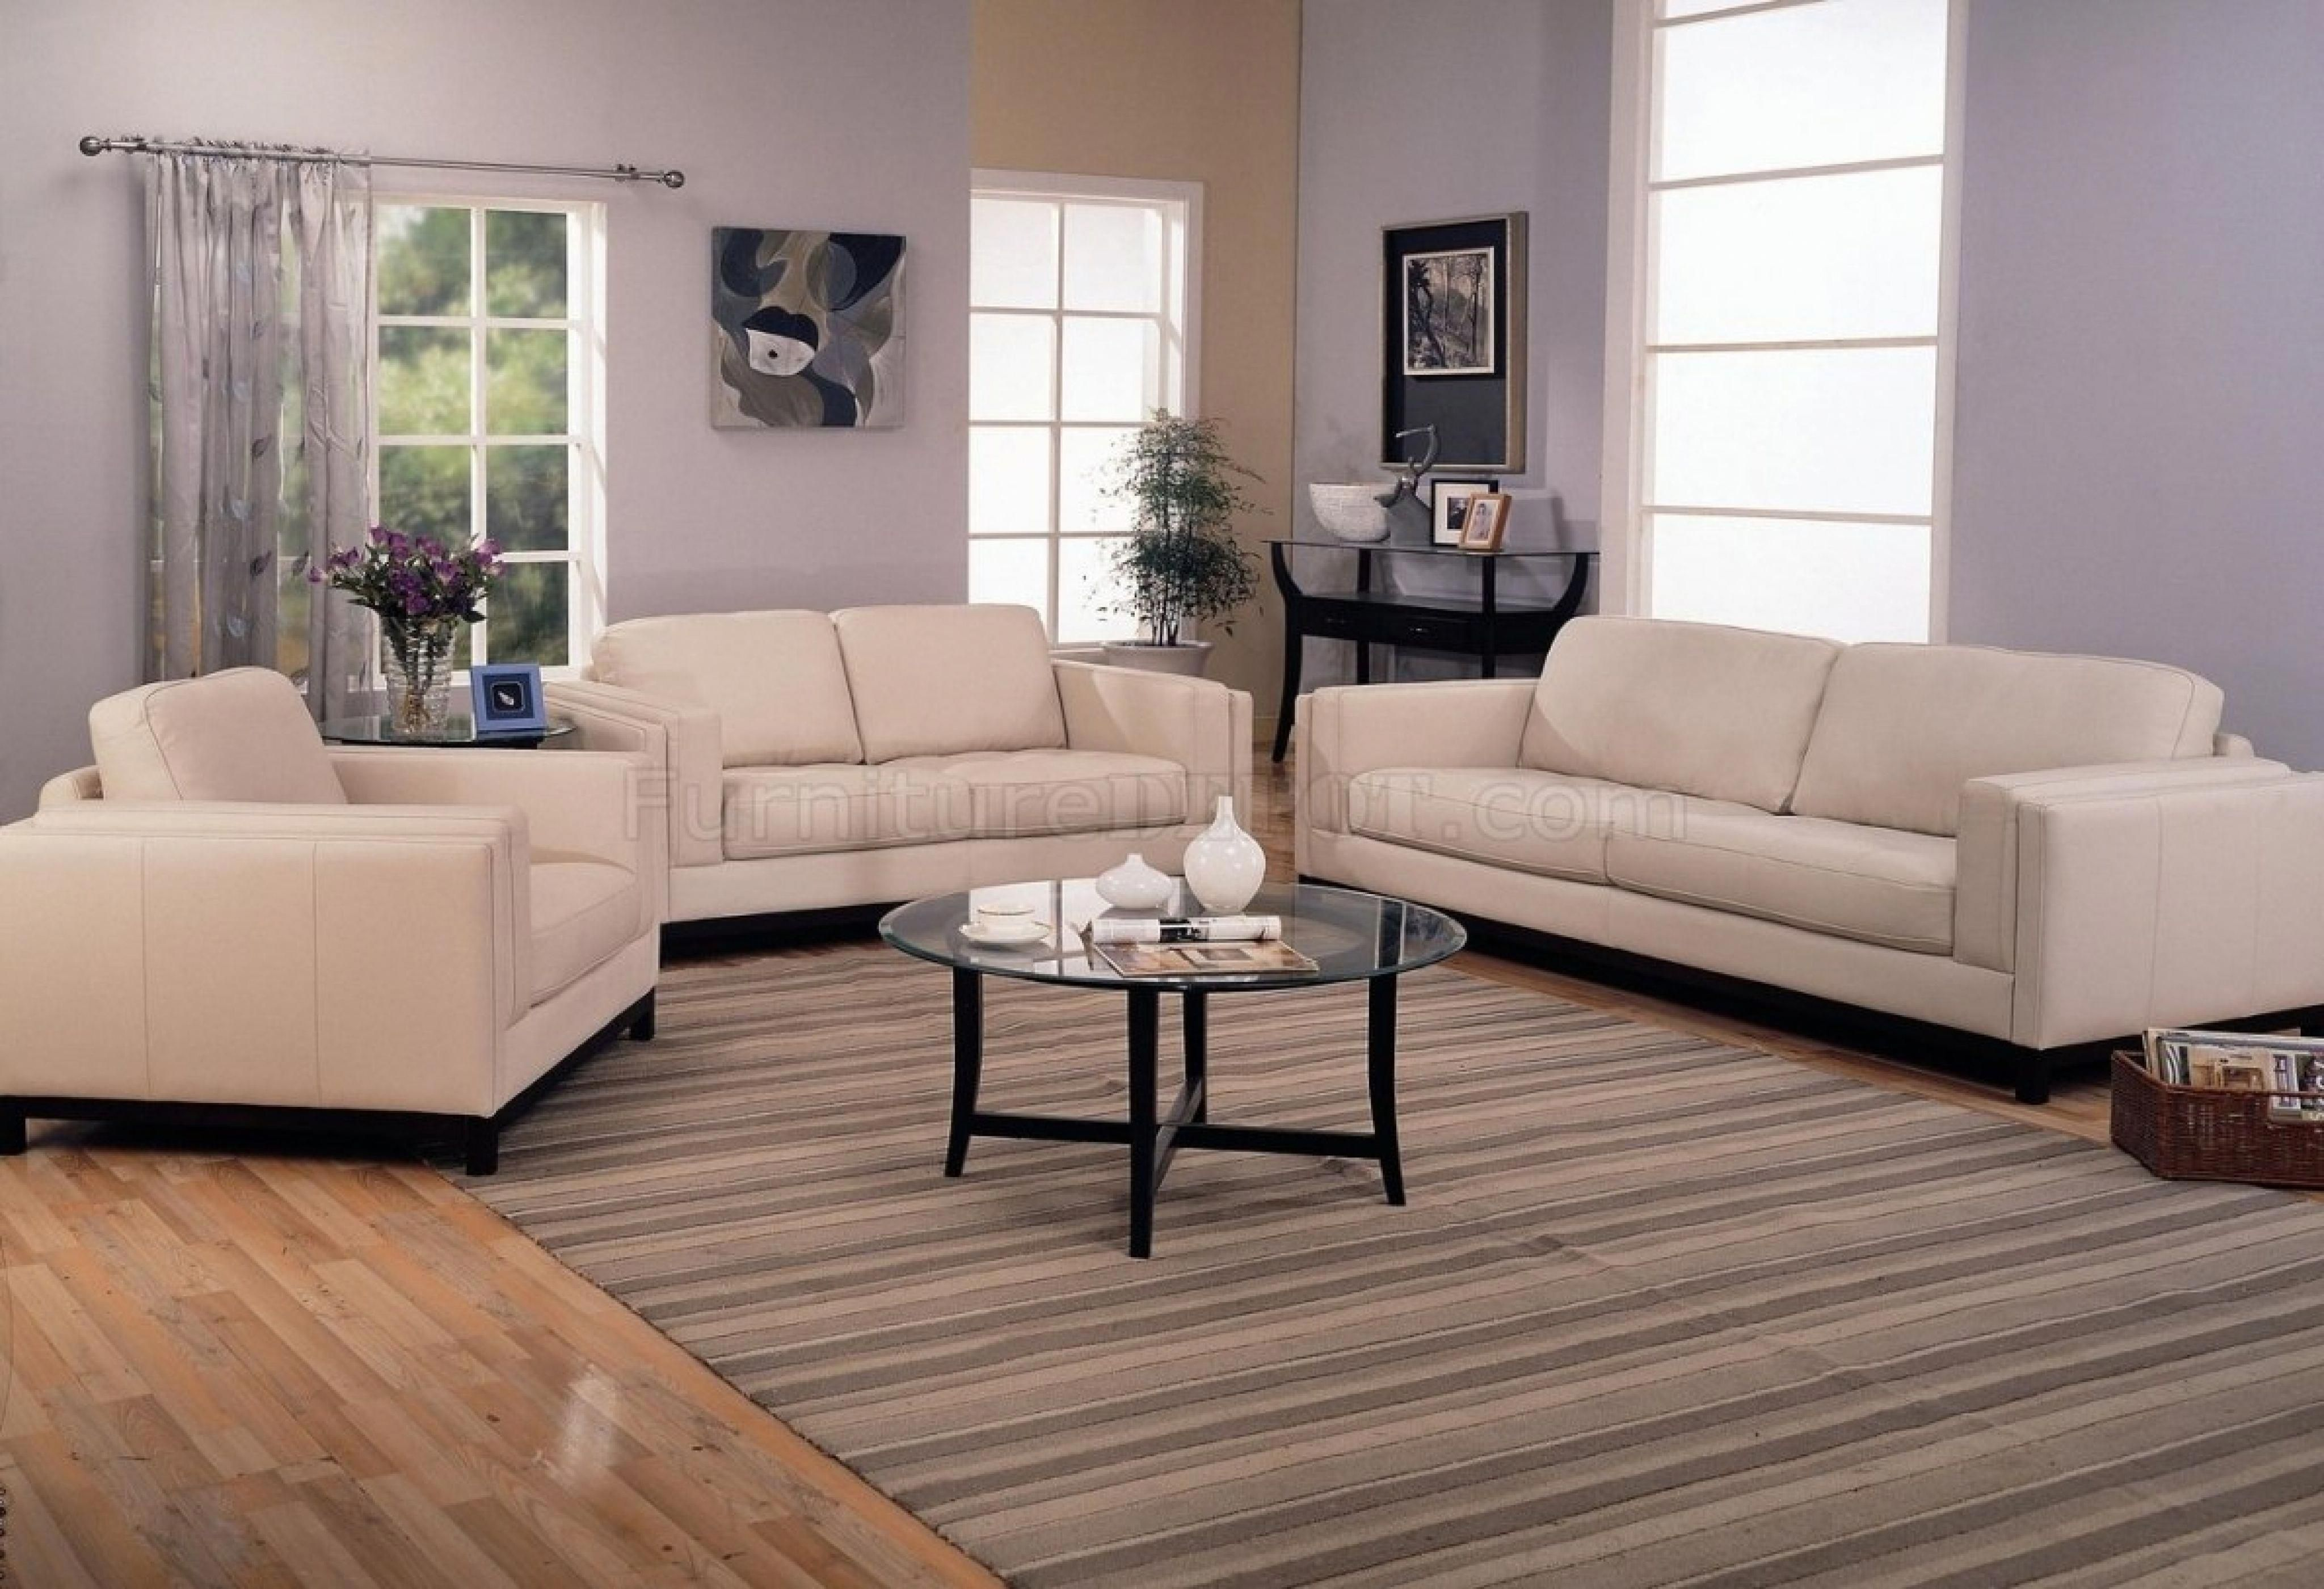 Leather Sofa Decorating Ideas Top Rated Interior Paint Leather Sofa Living Room Cream Leather Sofa Living Room Cream Living Room Furniture